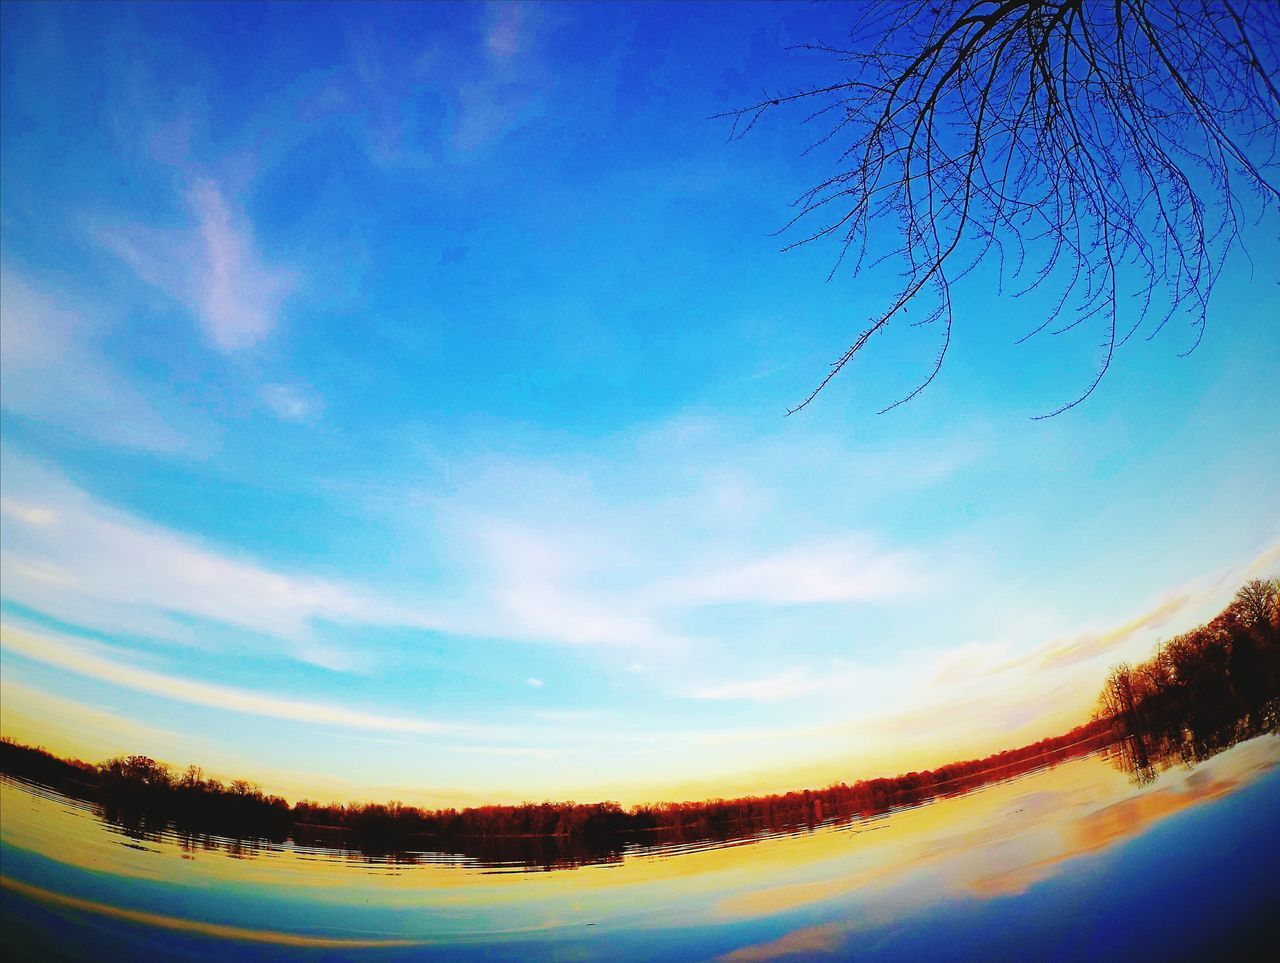 Sky Blue Tree Cloud - Sky Sunset Nature Outdoors Beauty In Nature No People Mountain Star - Space Day Lake Lake View Multi Colored Photography